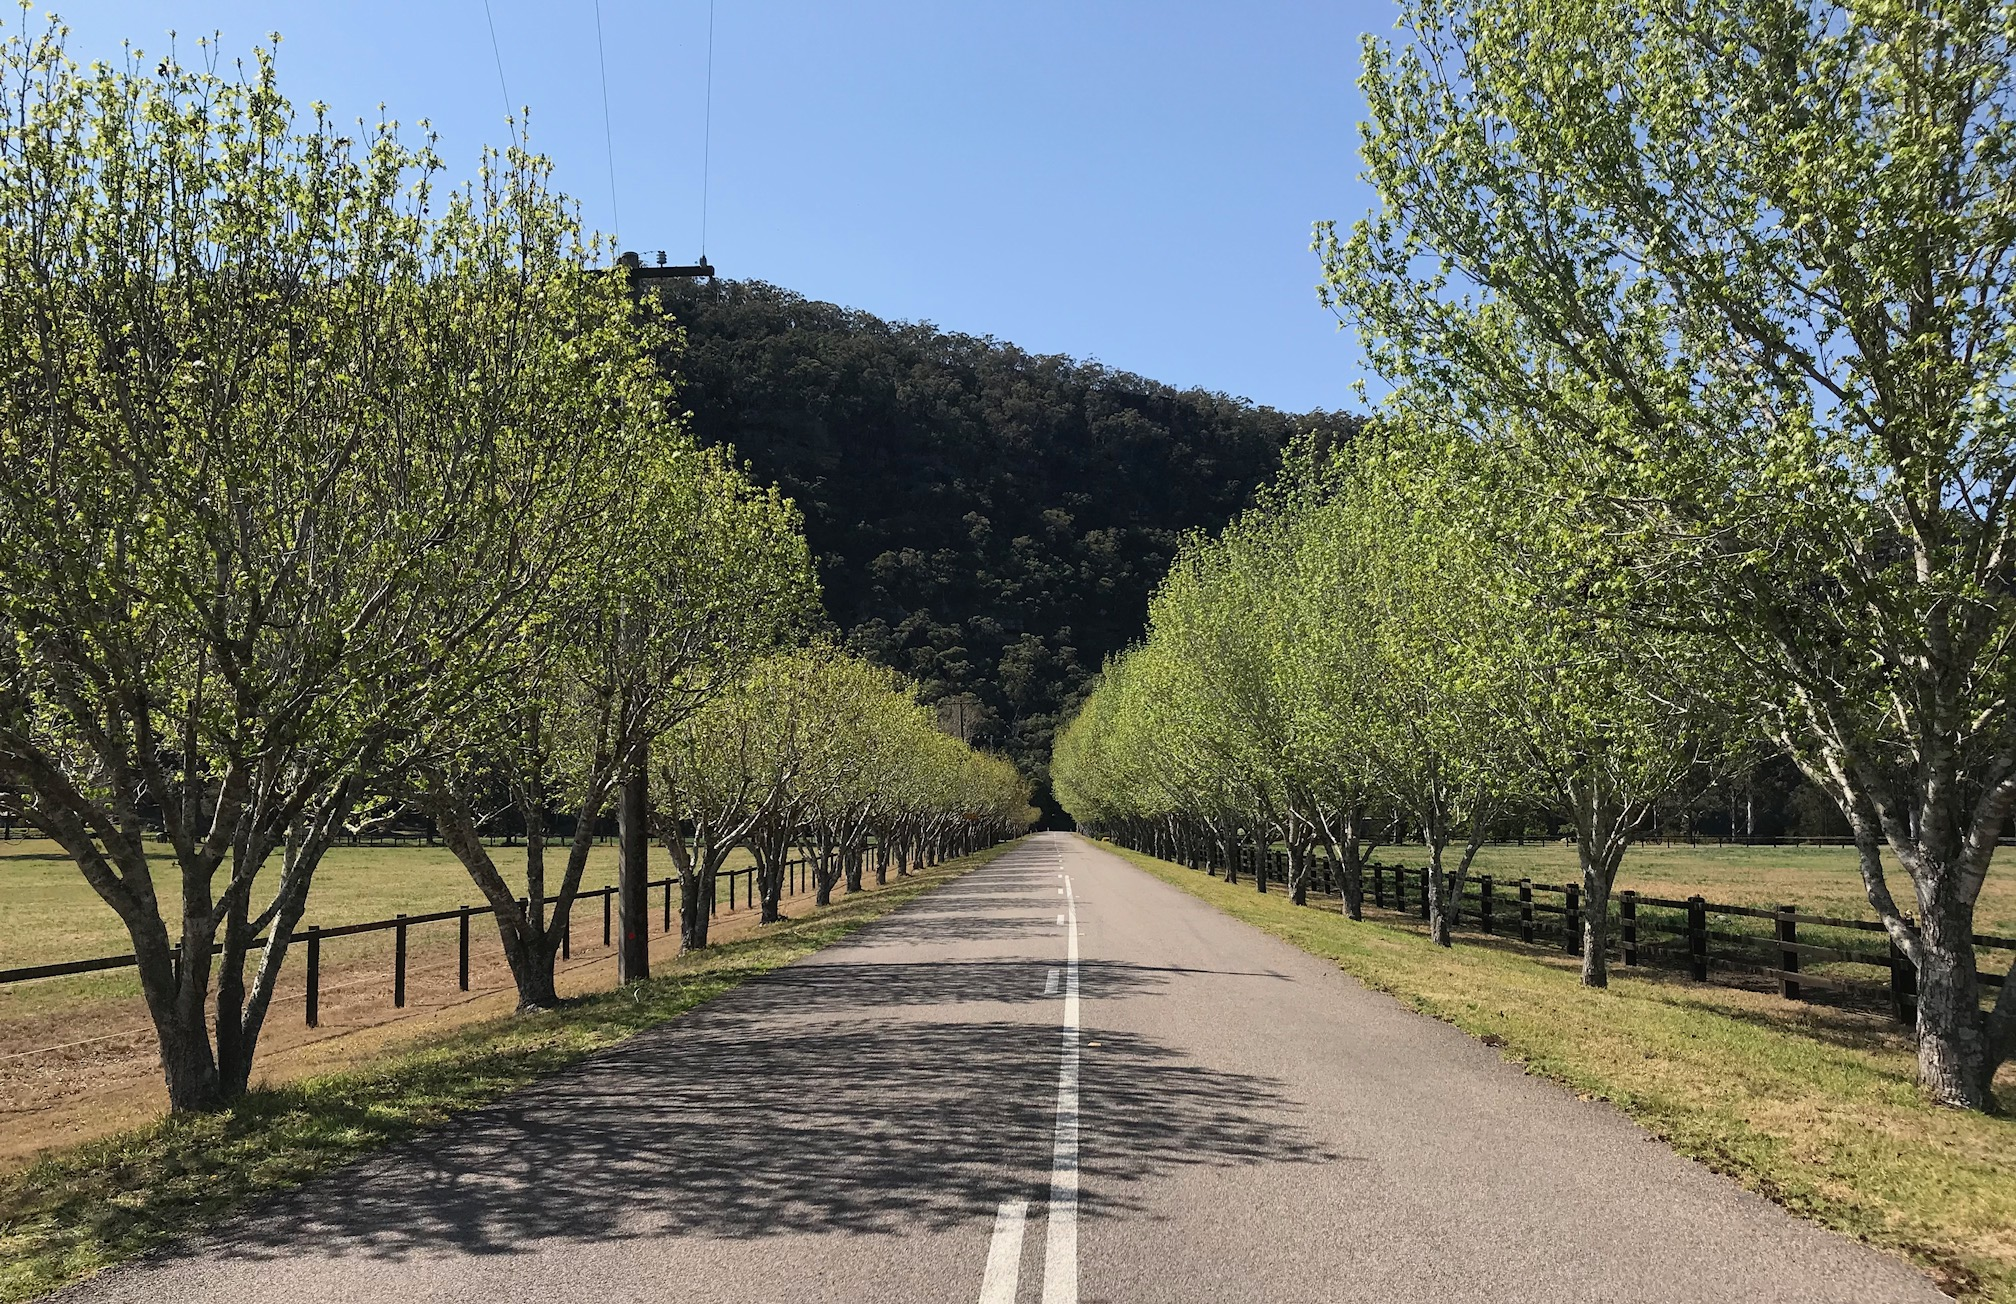 "The road from Wisemans Ferry to St Albans is the best kept secret in cycling. Very little motor traffic and just out of St Albans is this delightful panorama (picture taken on 10 Sept). This road will feature in a new event on the NSW road racing calendar in mid May 2019 that includes the St Albans "" Hell of the North "" dirt section very much in the classic Paris Roubaix tradition. Planning for this new event is now well underway."